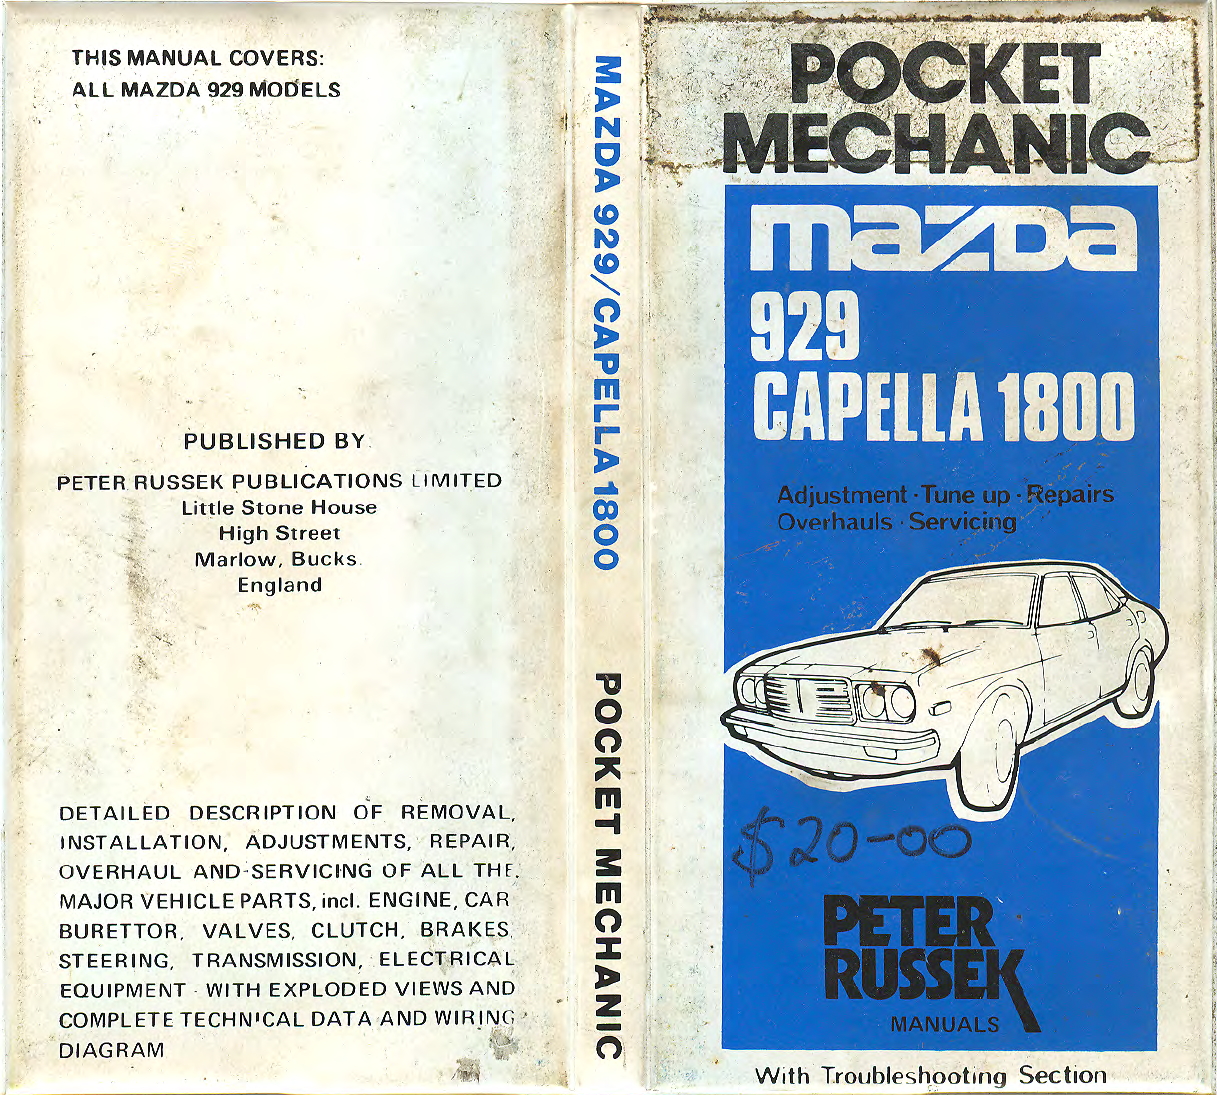 See our other Mazda 929 Manuals: Mazda 929 1991 Wiring Diagrams